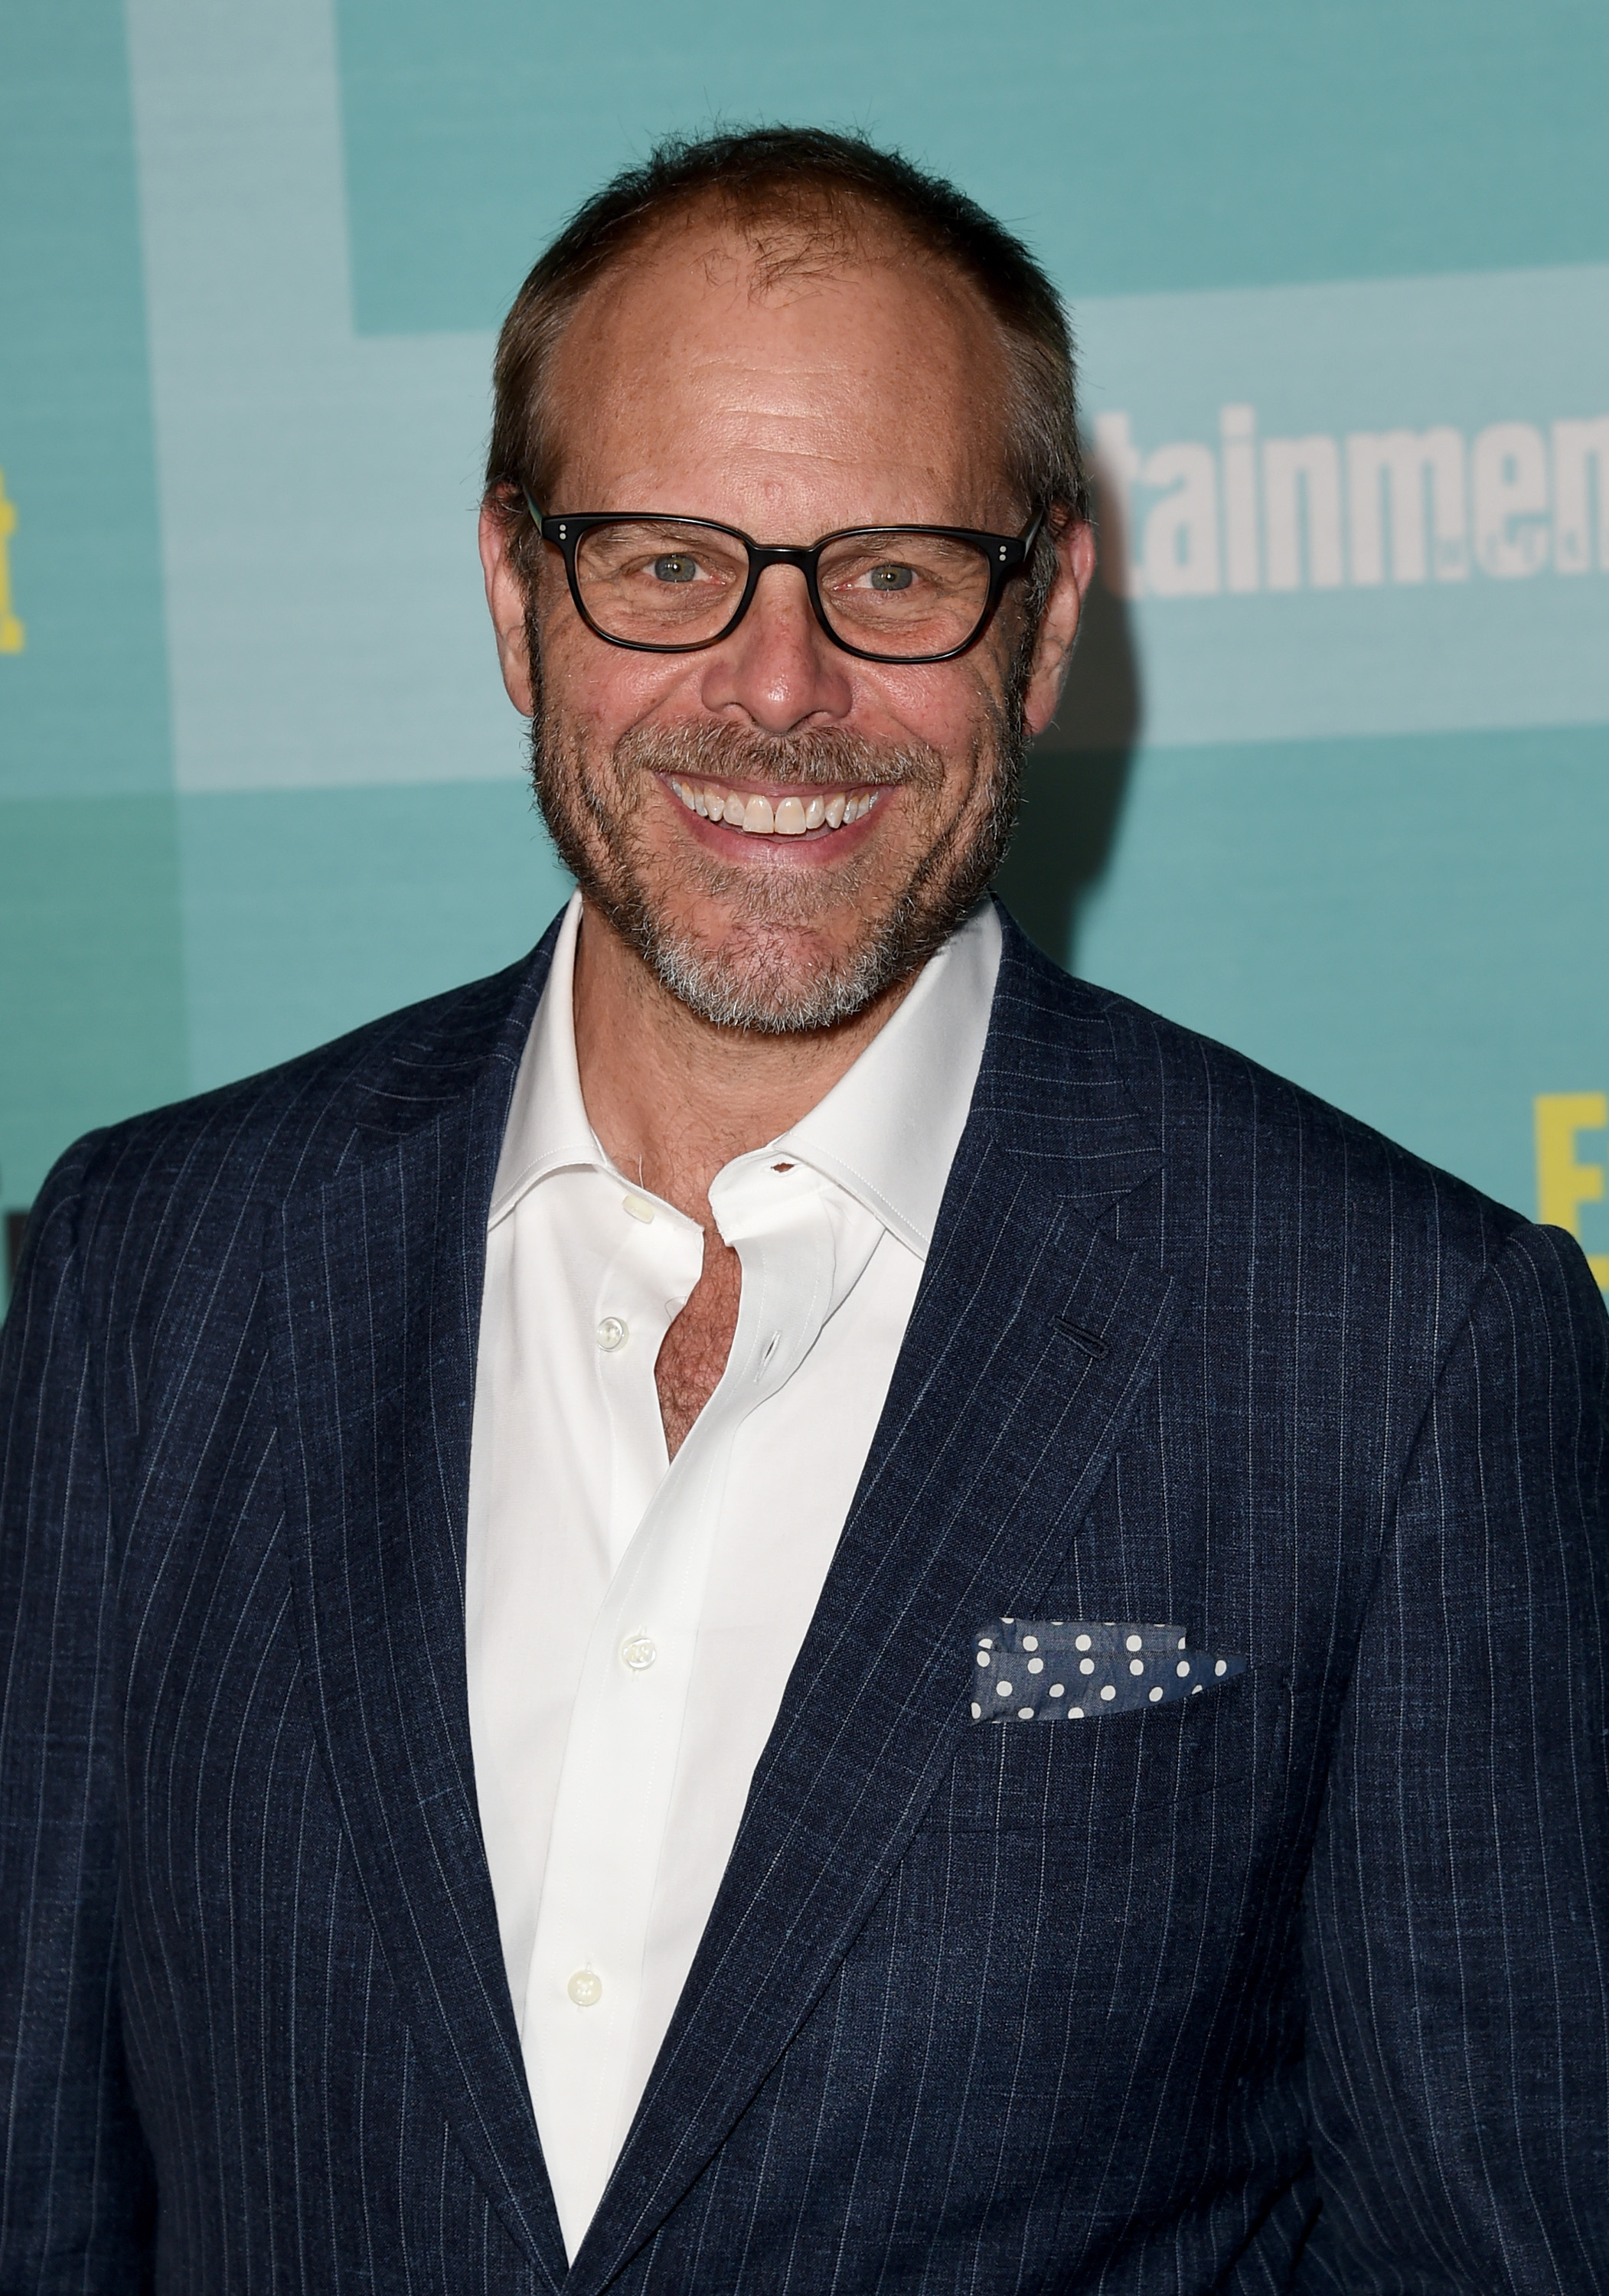 Alton Brown Fires Back at Anthony Bourdain's Comments About TV Chefs